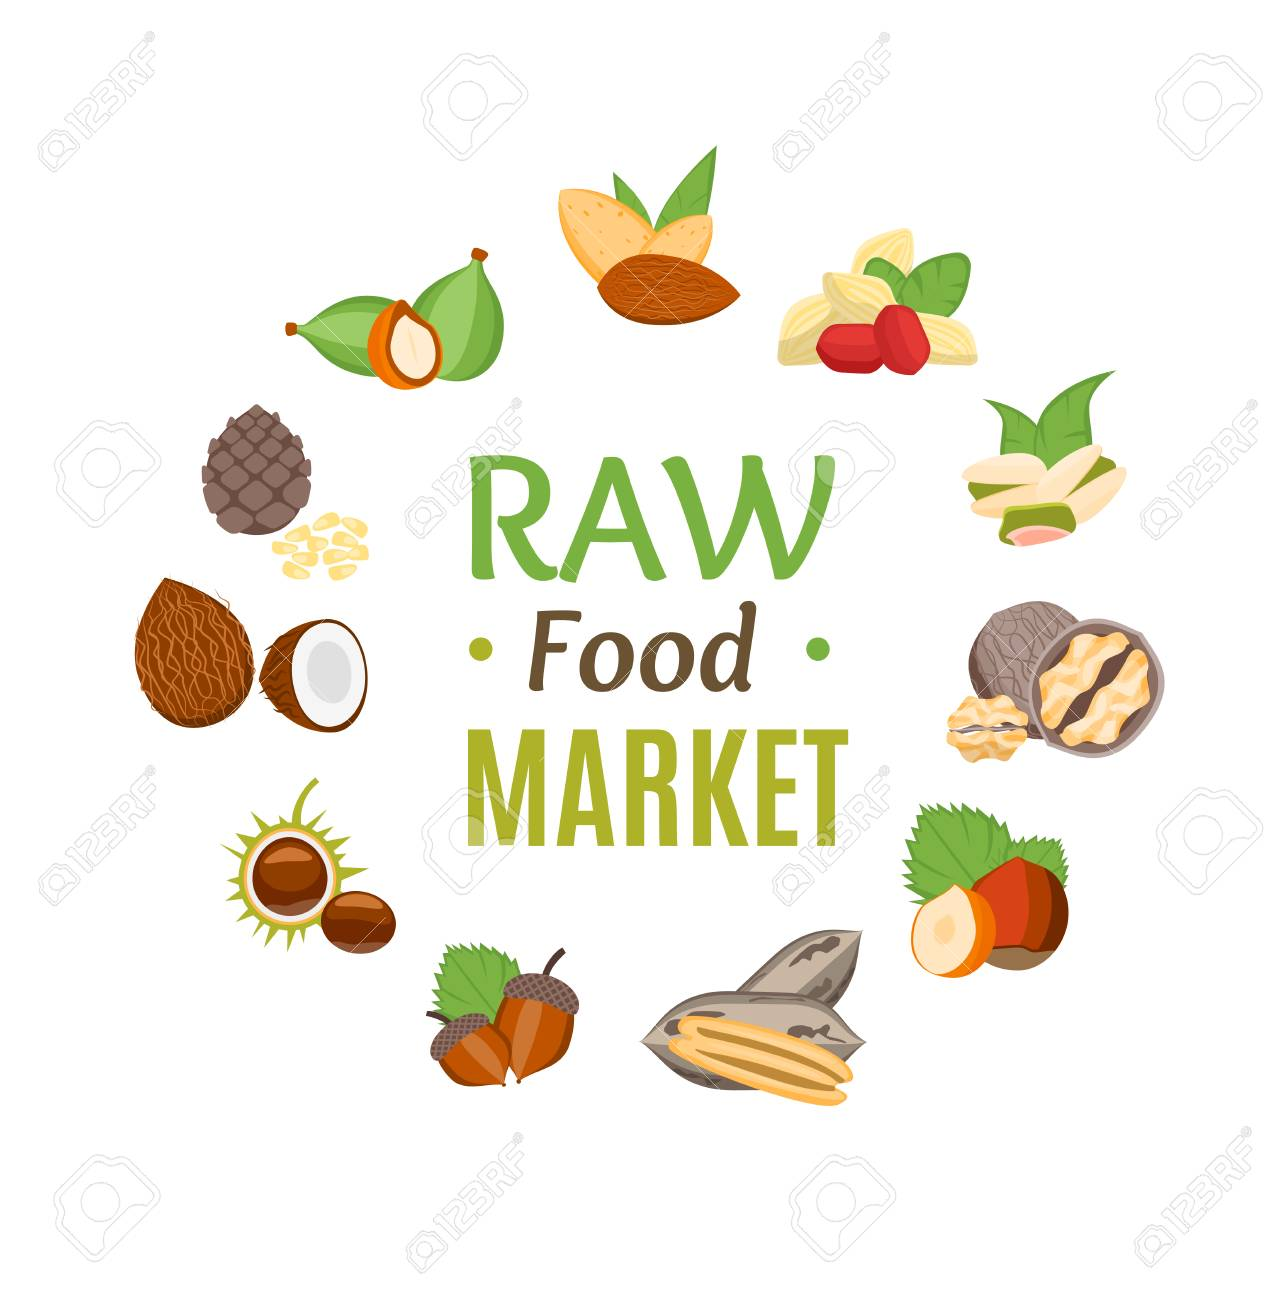 raw food market round design template witch nuts icons vector